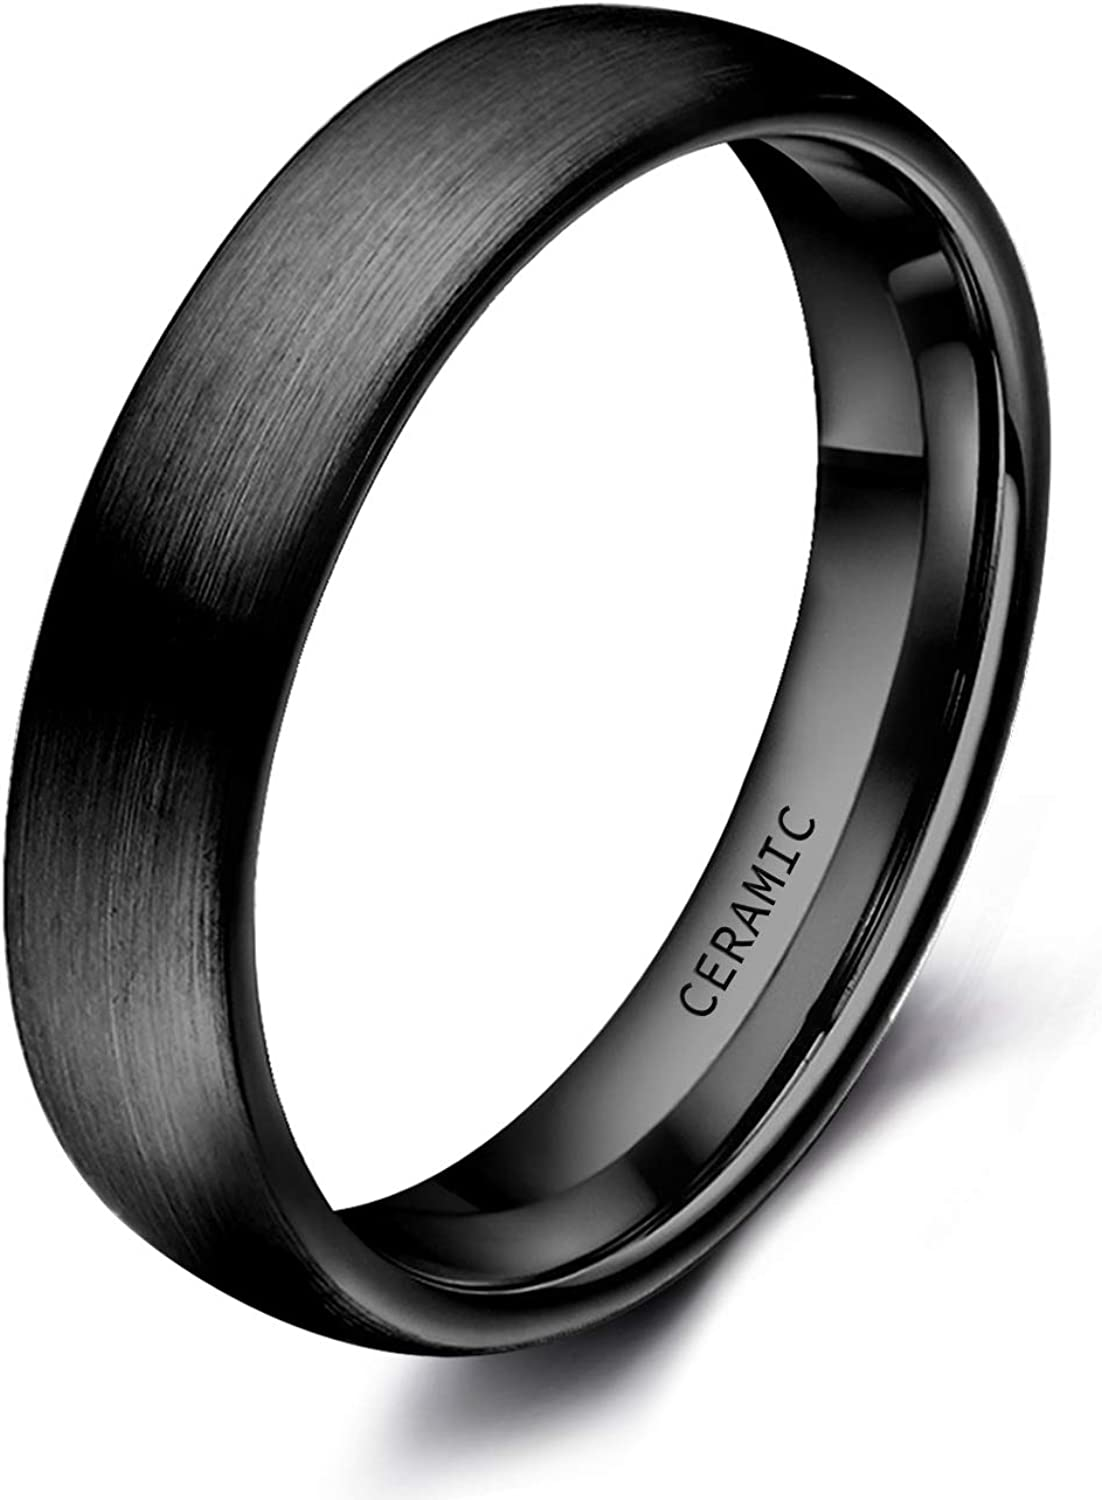 SOMEN TUNGSTEN 4mm 6mm 8mm Black Ceramic Rings Brushed Comfort Fit Engagement Wedding Band Size 4-13